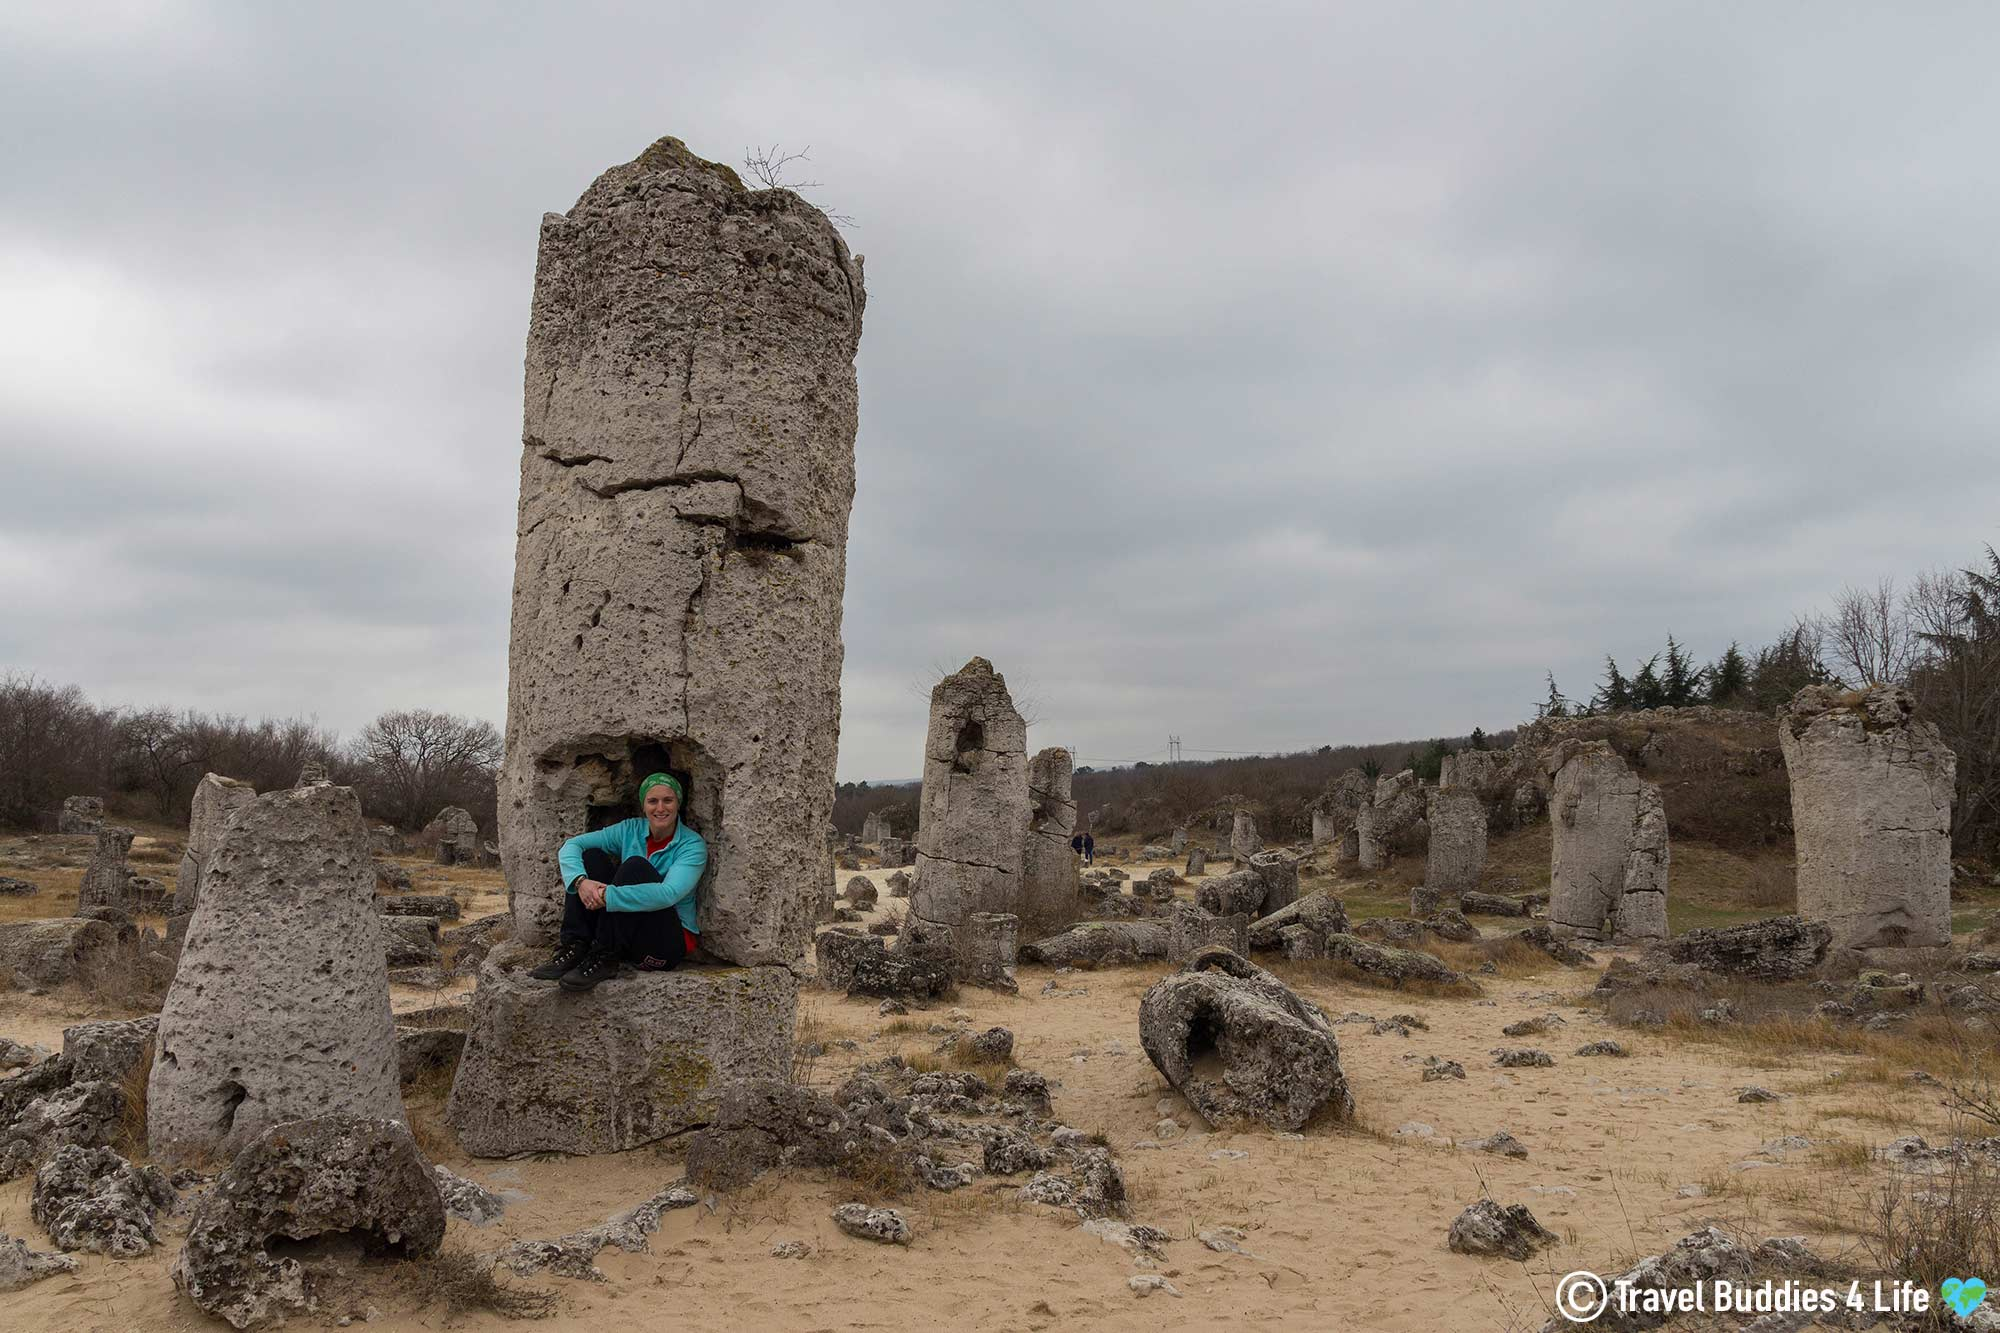 Ali Sitting In A Rock Formation At The Stone Desert In Bulgaria, Traveling Europe